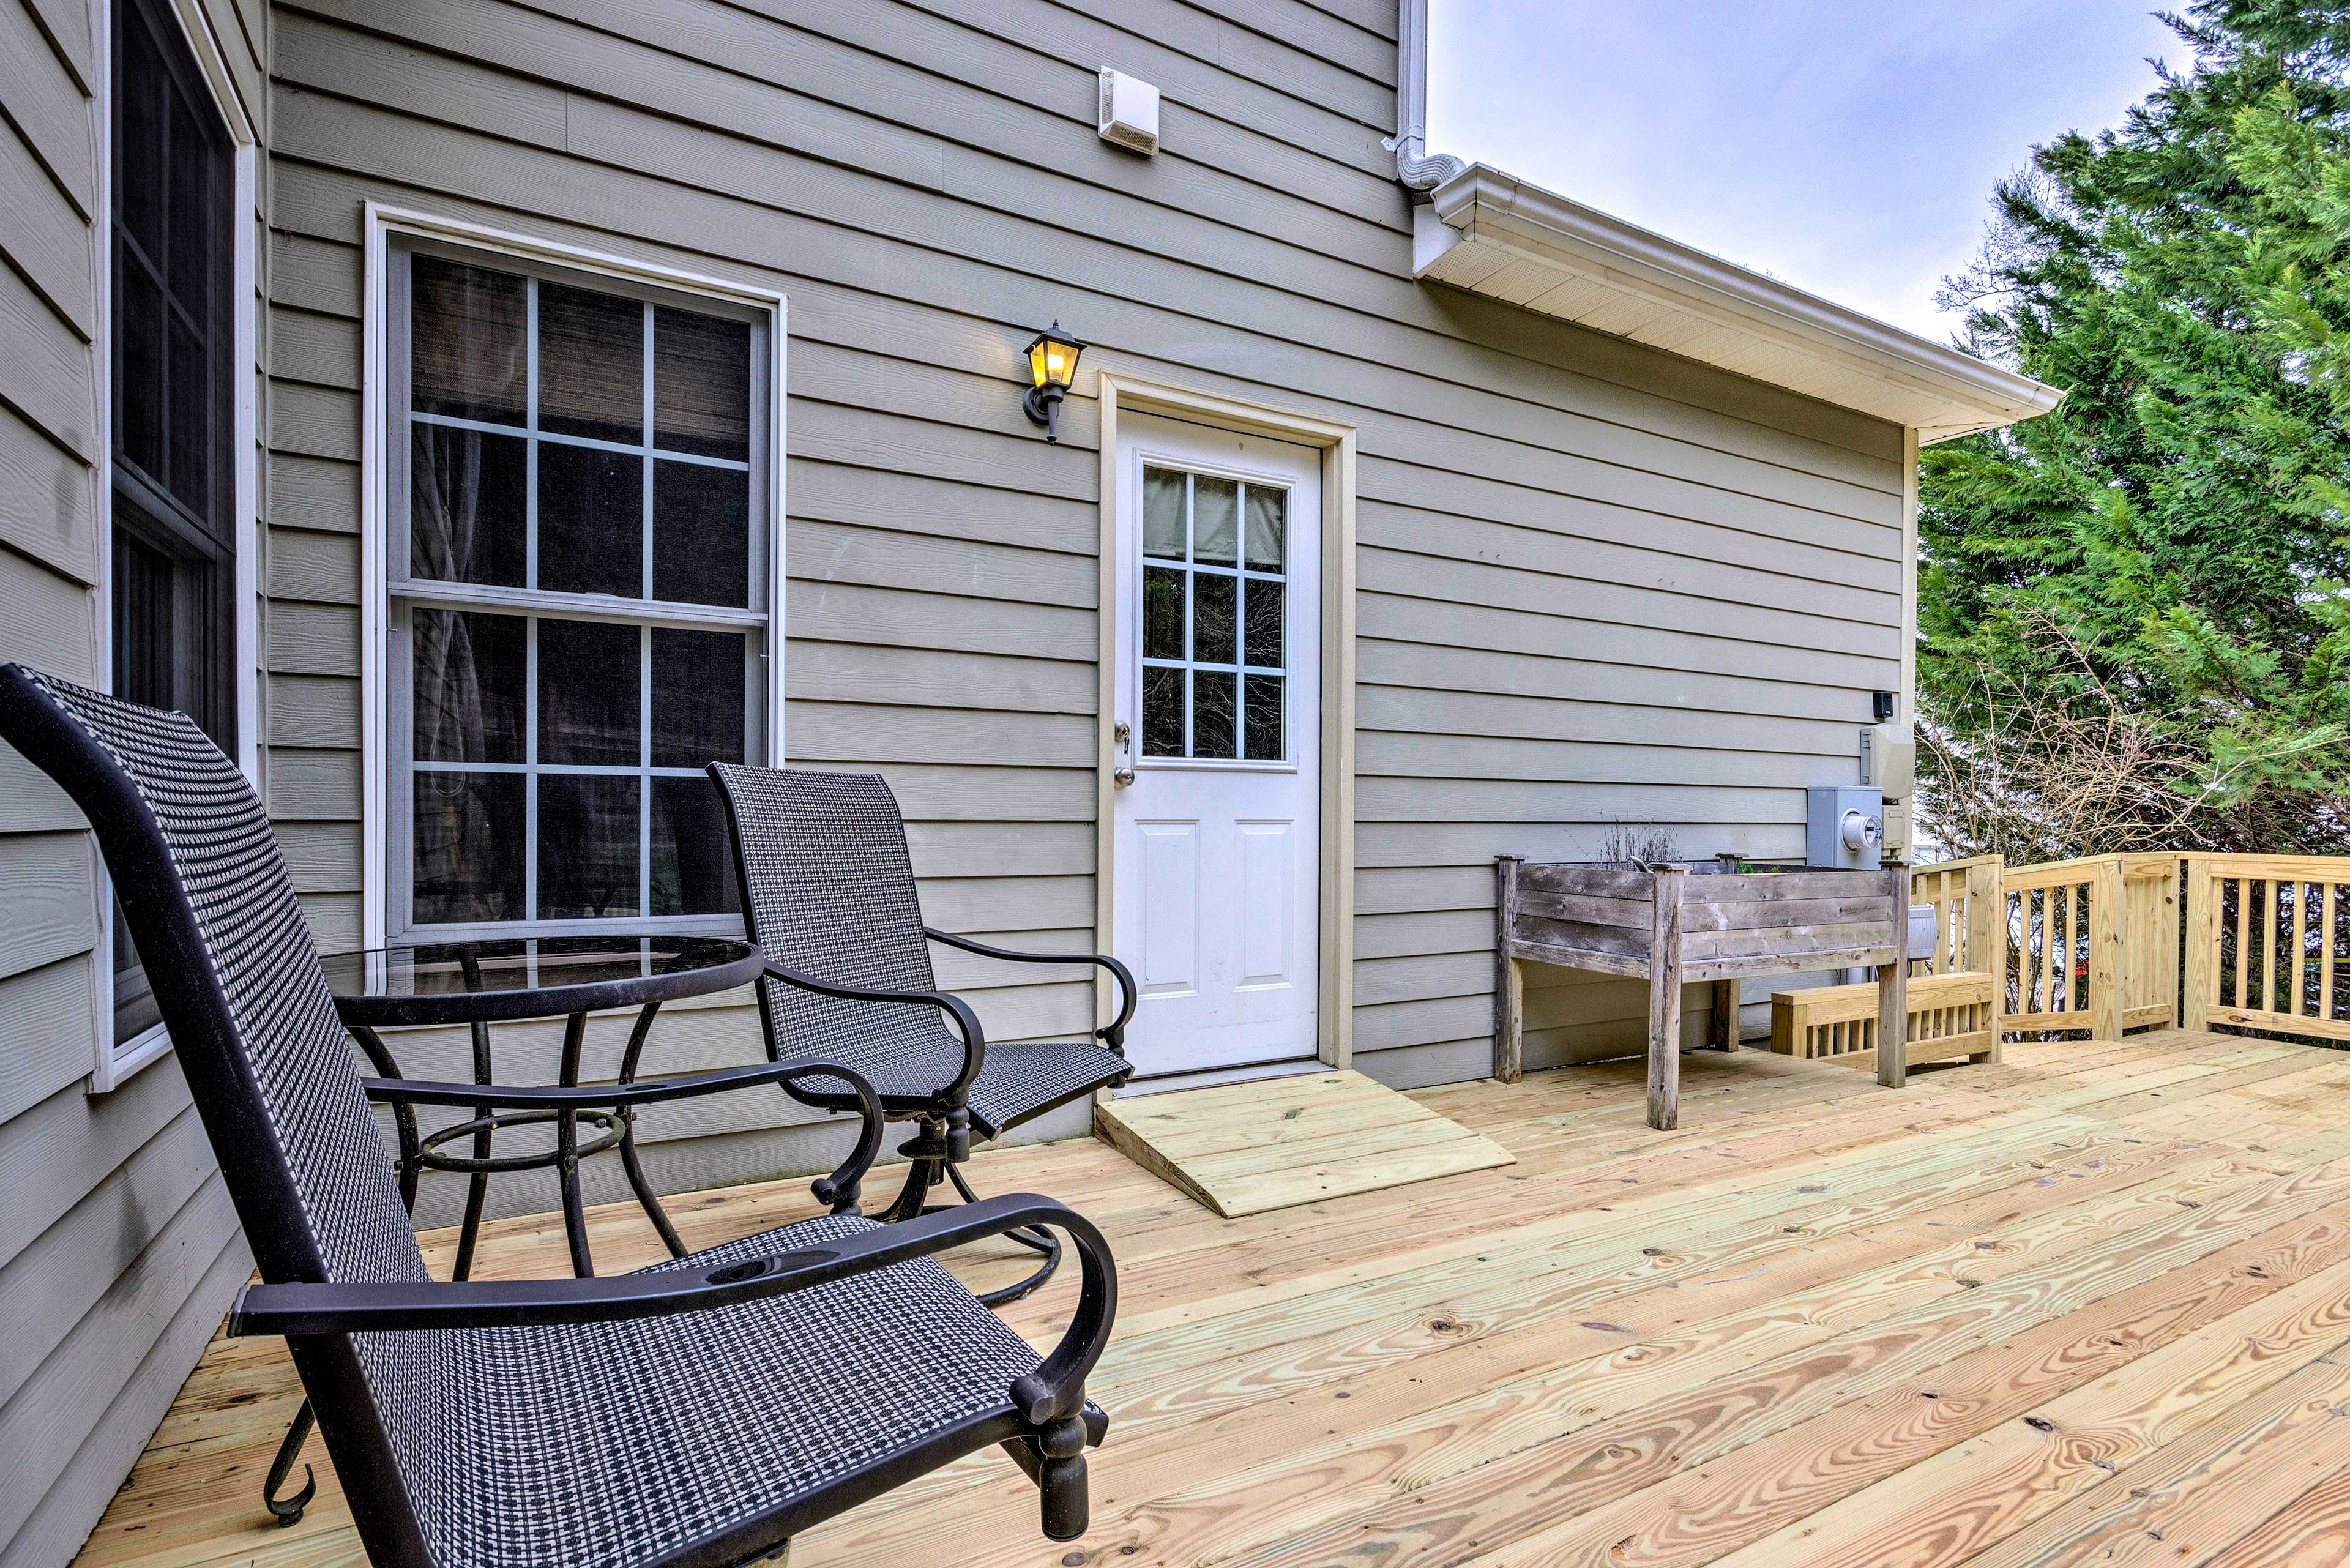 Spend sunny afternoons on the backyard deck!